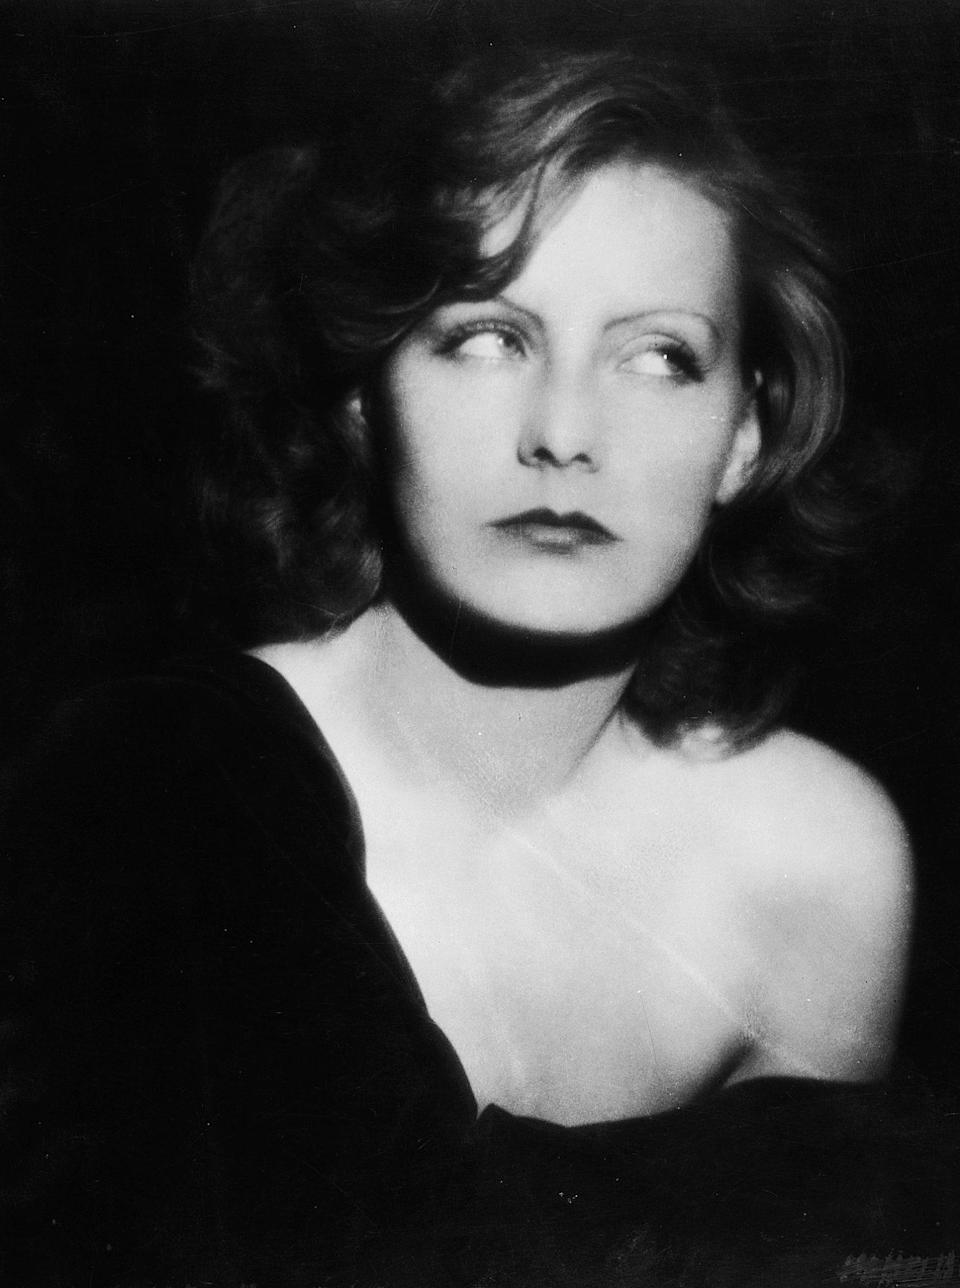 <p>Ruth Harriet Louise took this glamorous photo of actress Greta Garbo (and her iconic eyebrows) in 1926. </p>